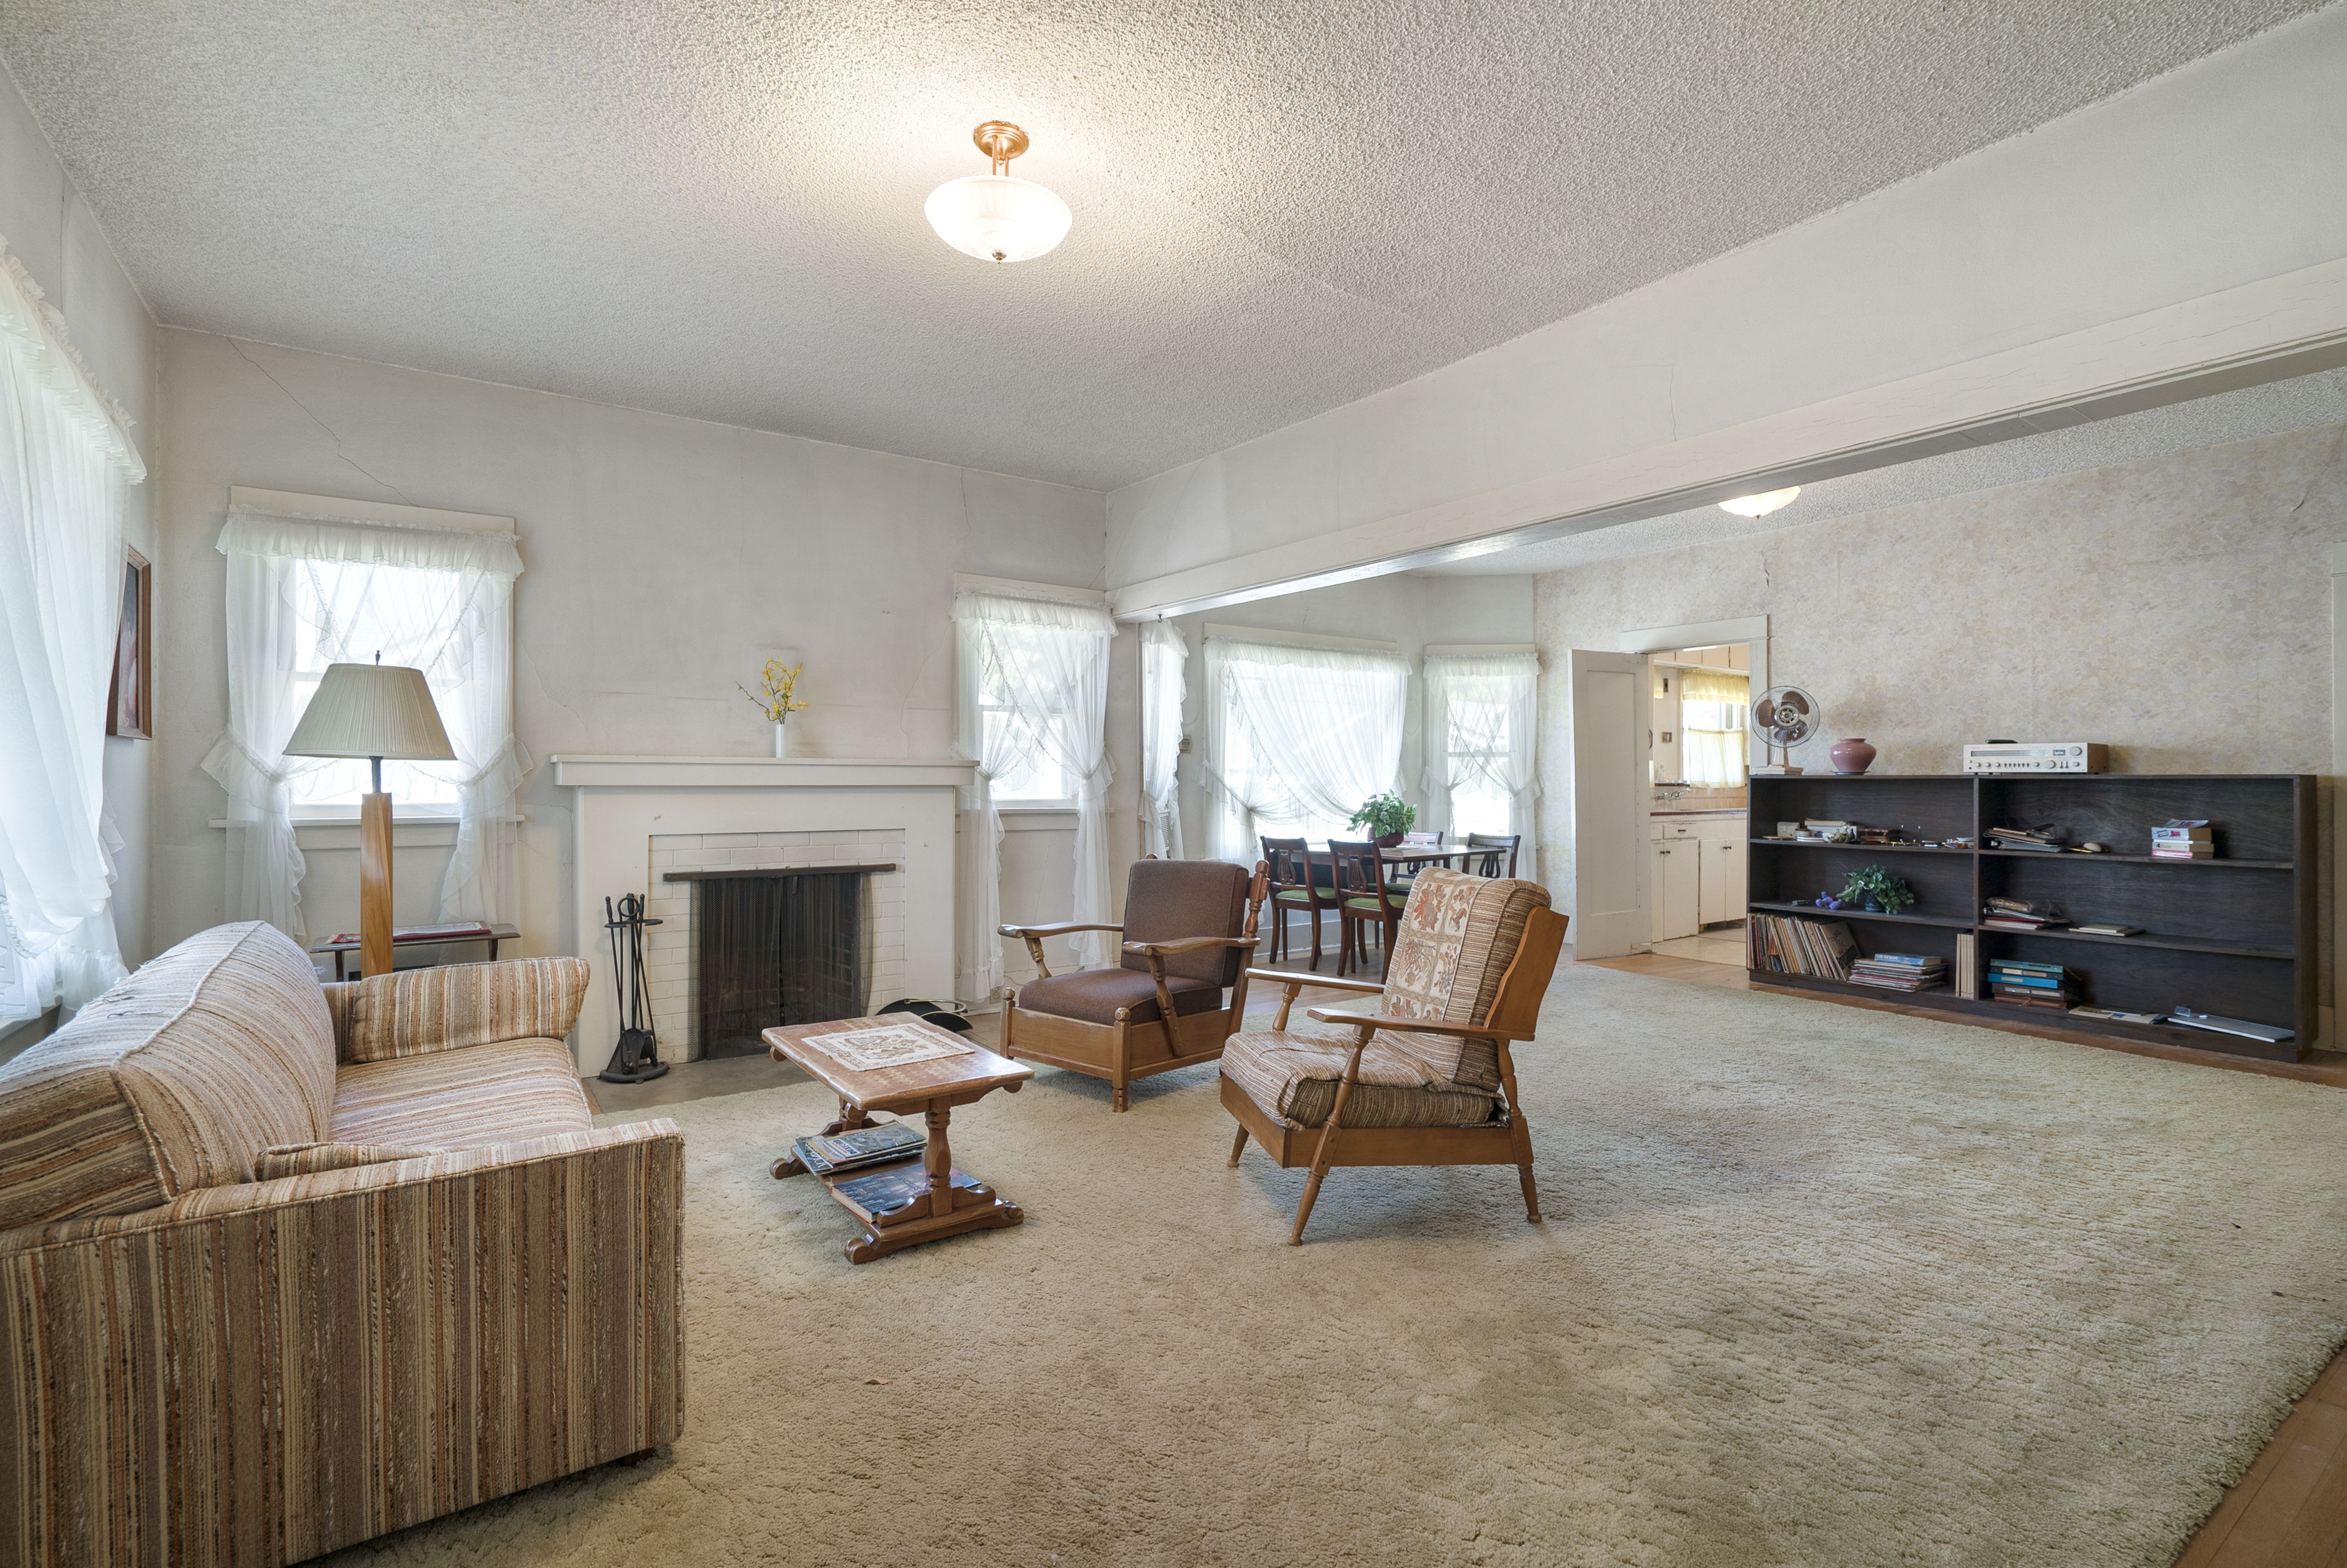 Spacious Living Room Dining Room Combo With Wood Burning Fireplace And Hardwood Floors The Sister Team